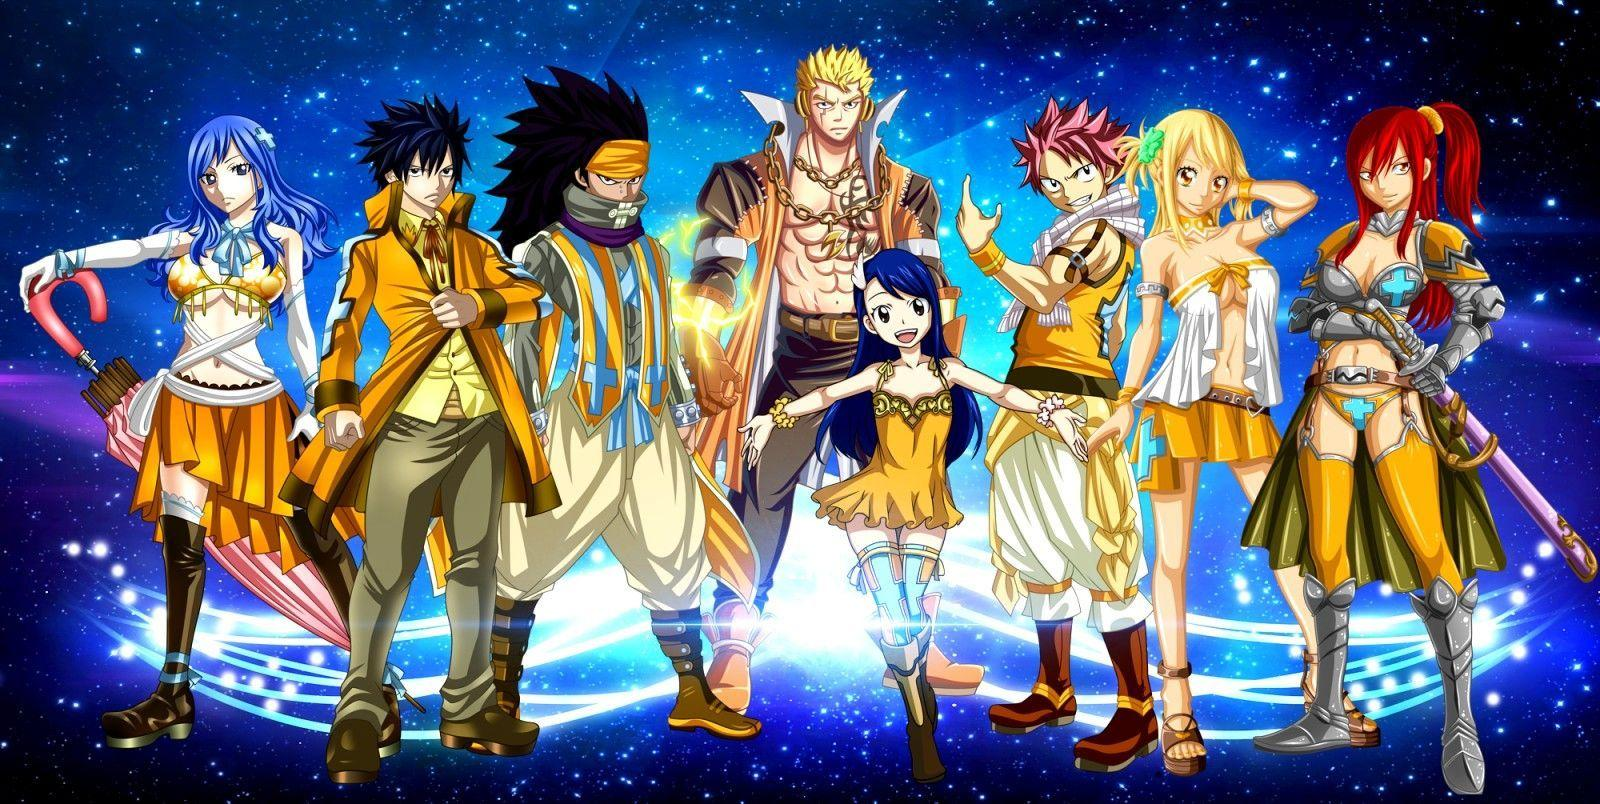 Download Fairy Tail Fantasia Hd Wallpapers